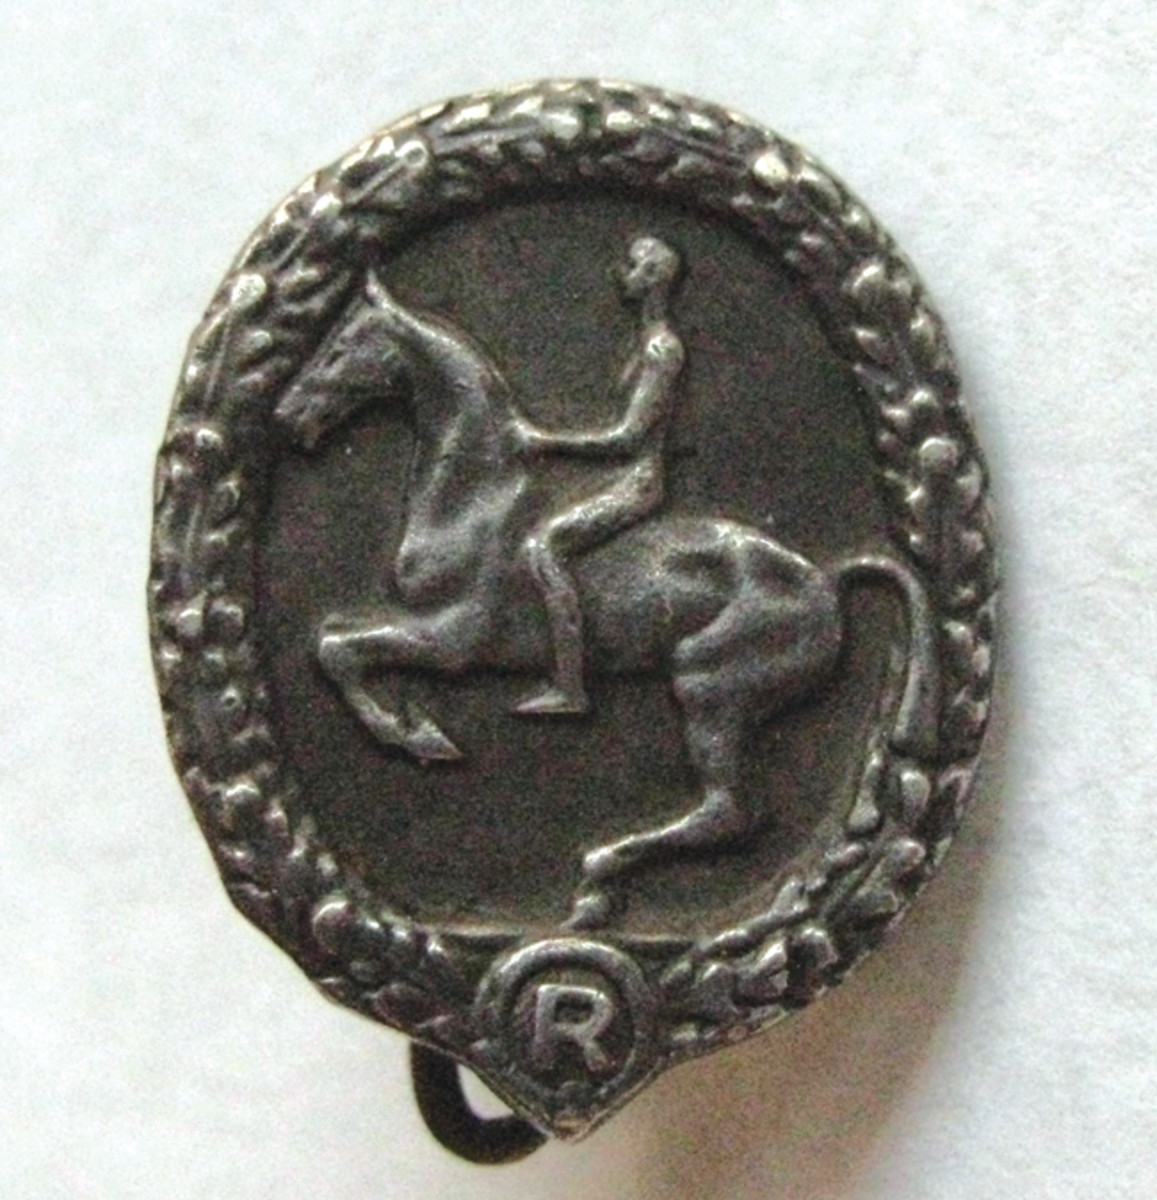 This silver miniature Horseman's Badge is in a pin back configuration rather than the more common stick pin attachment.